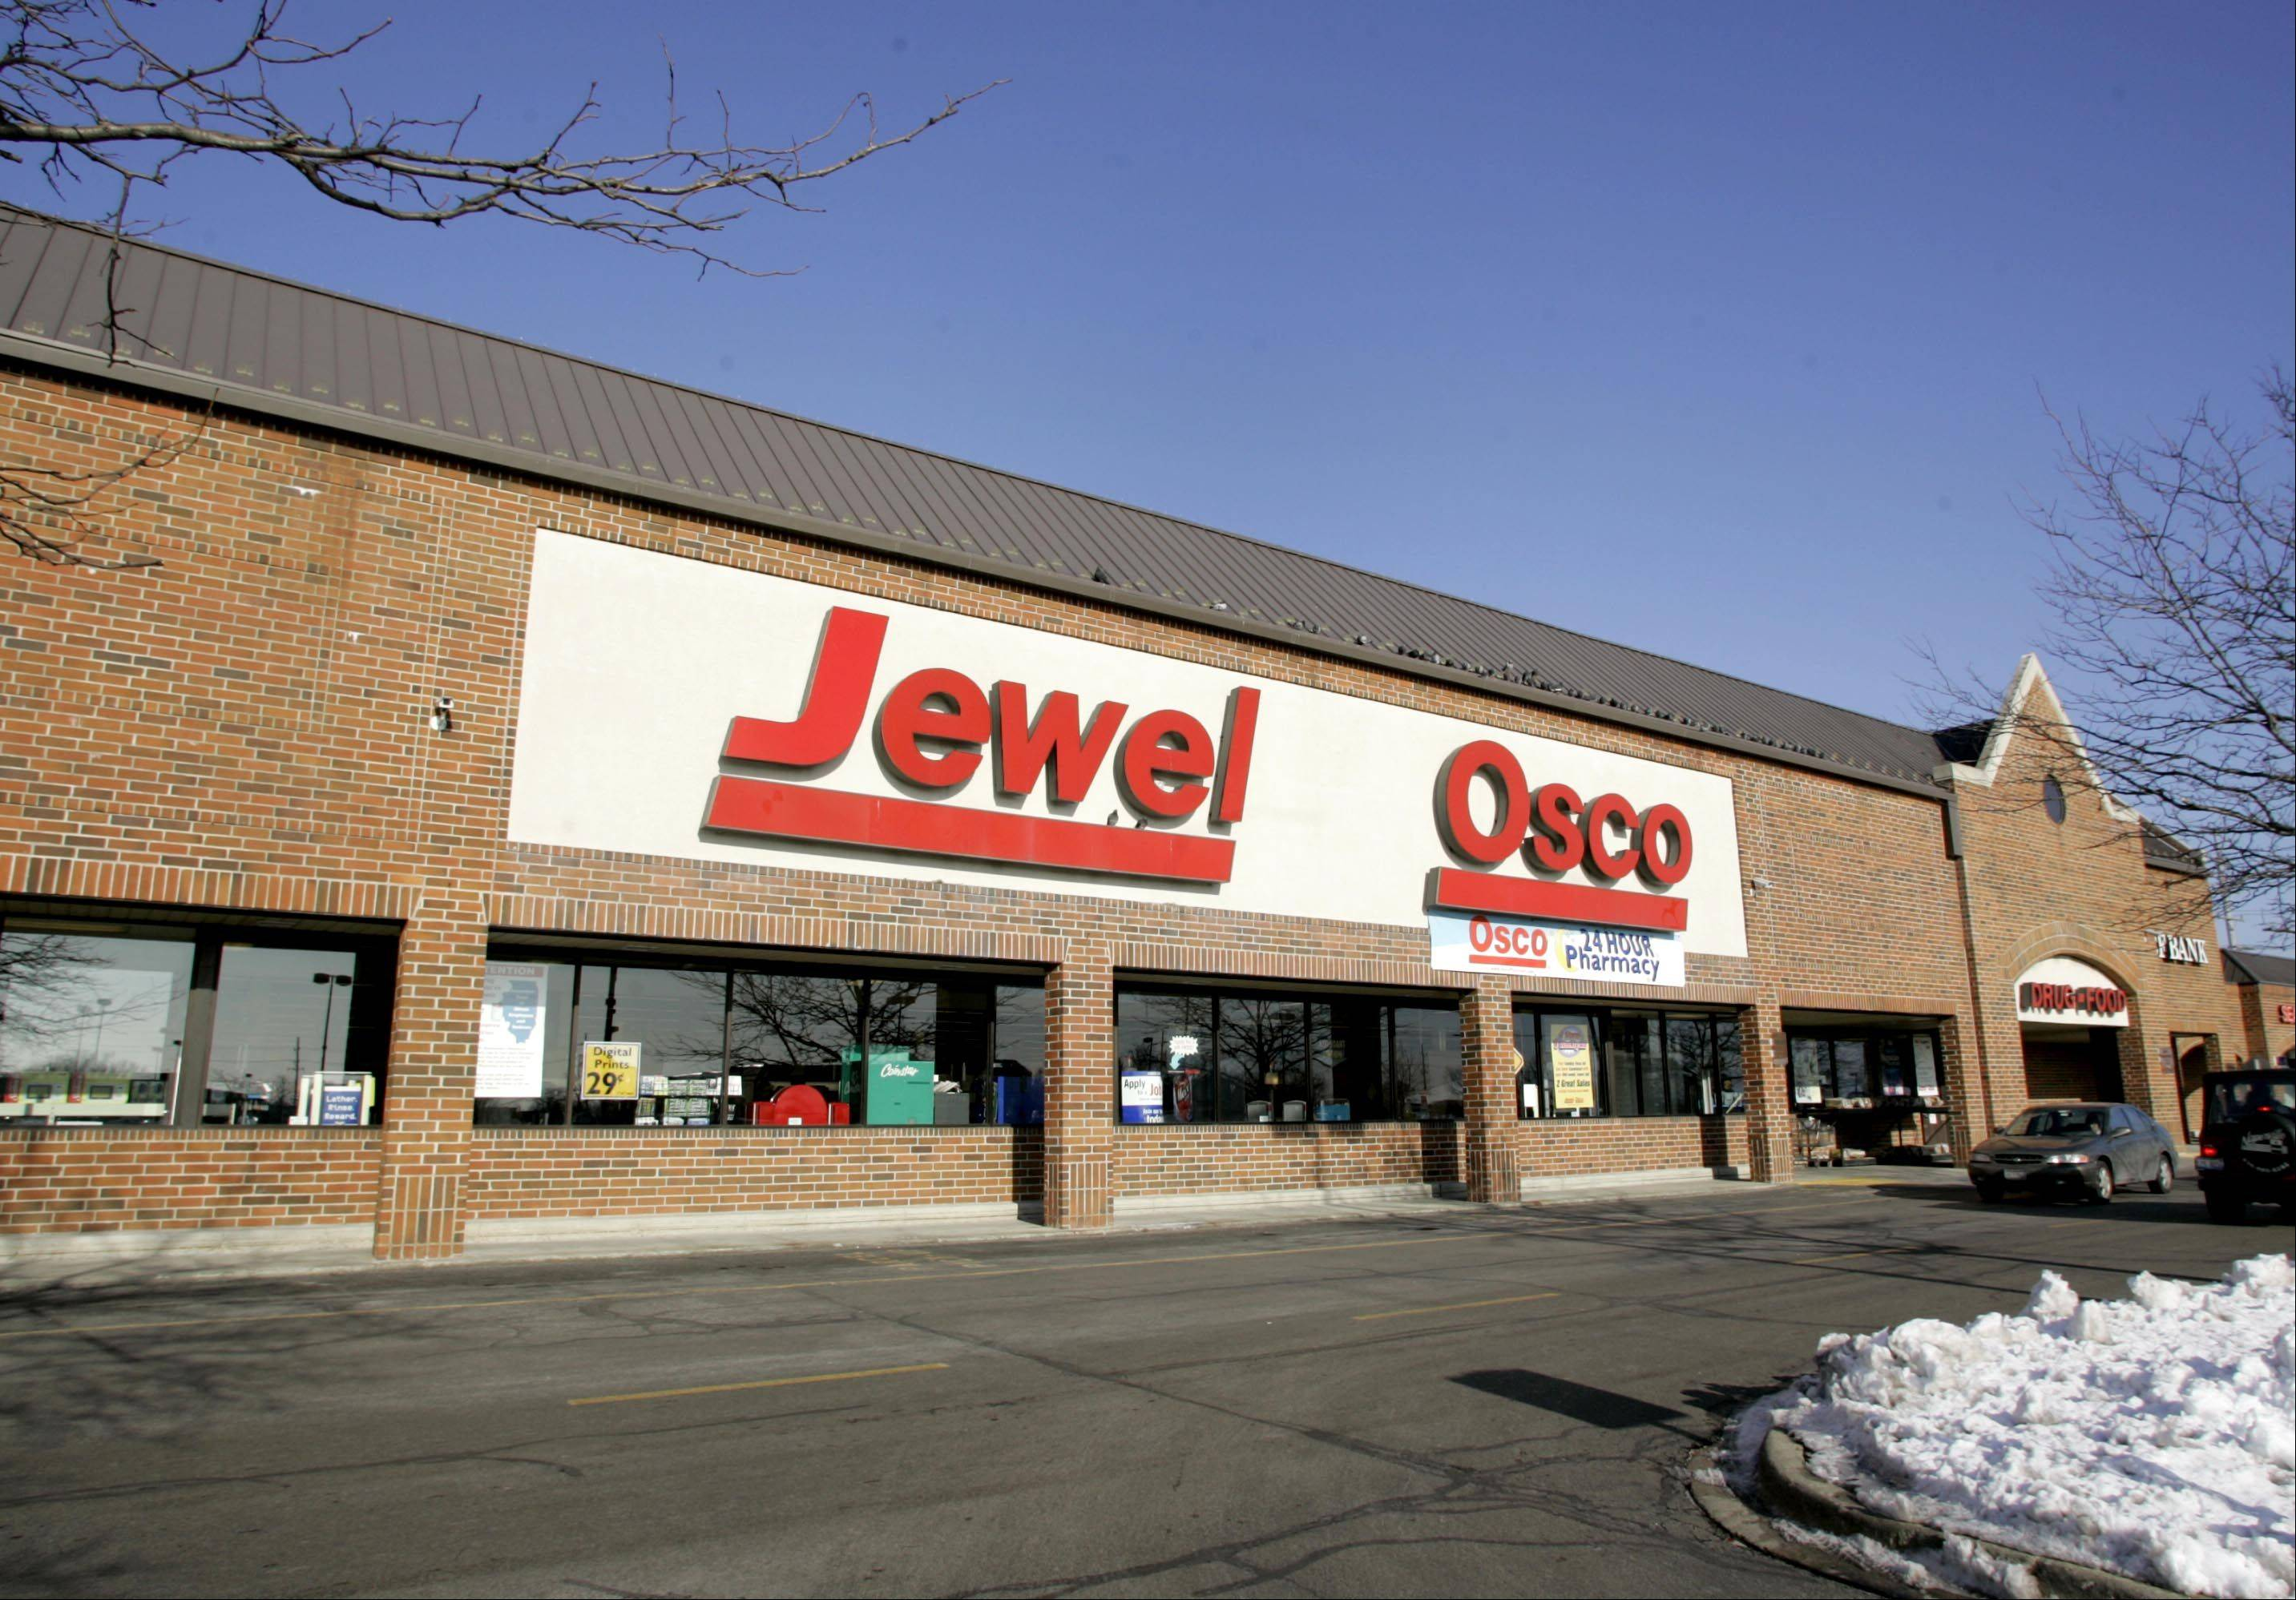 Supervalu is eliminating about 1,100 positions nationwide less than a week after the supermarket operator completed the sale of five of its grocery chains, including Jewel-Osco.